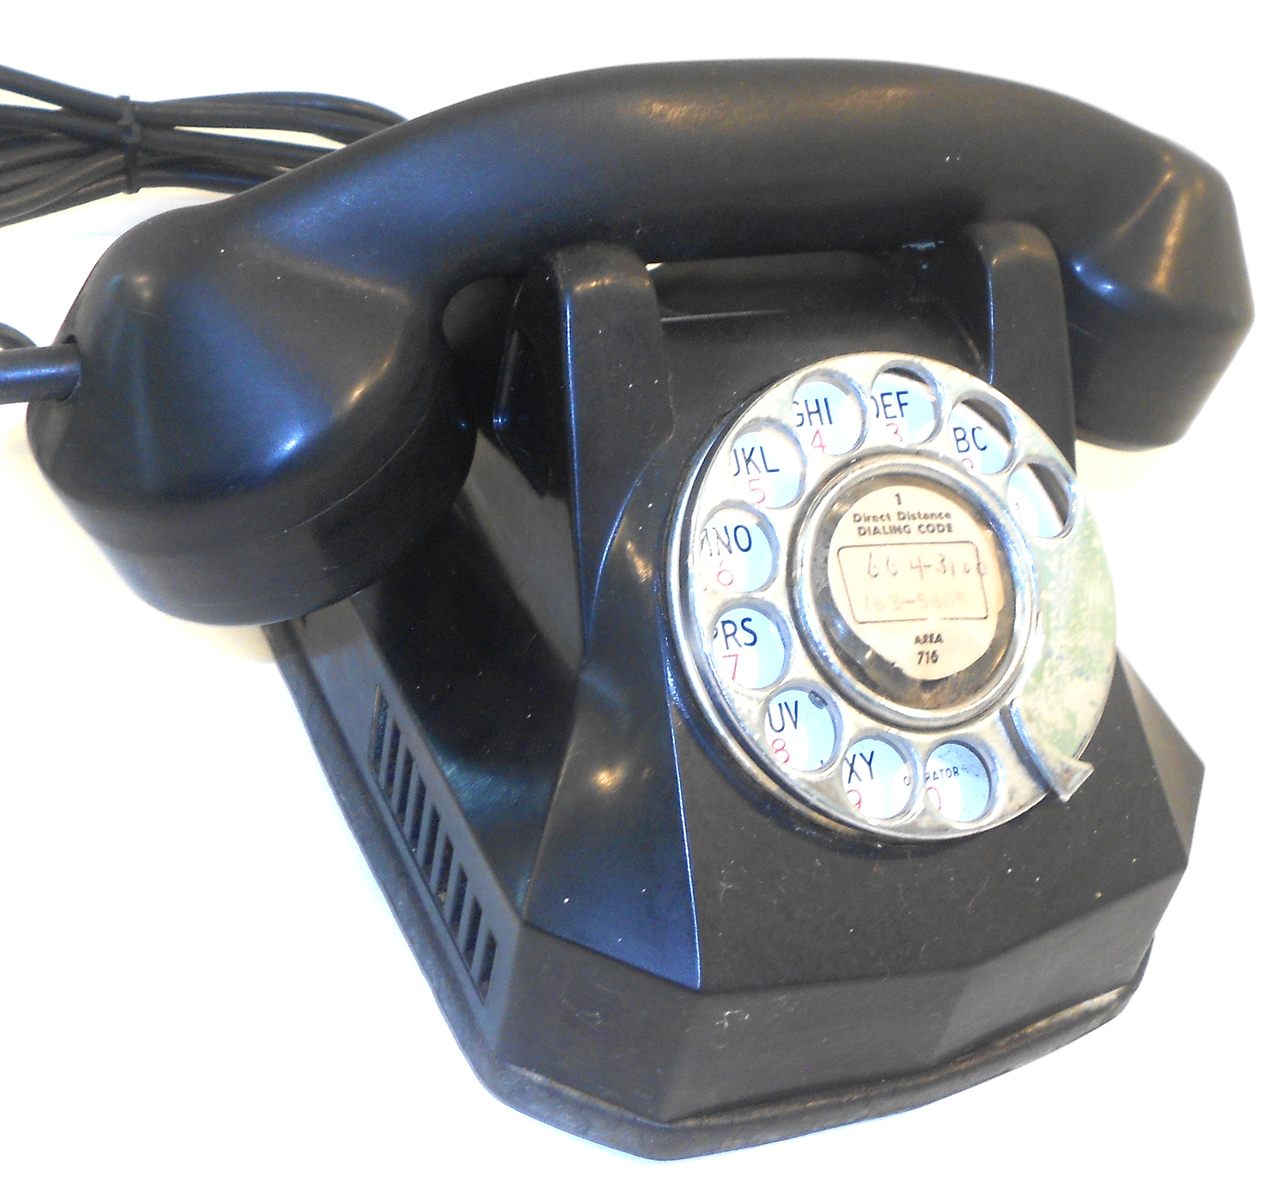 hight resolution of  no breaks or major damage to the phone body itself needs new plug and a good polish great art deco style desk phone to restore for your next project